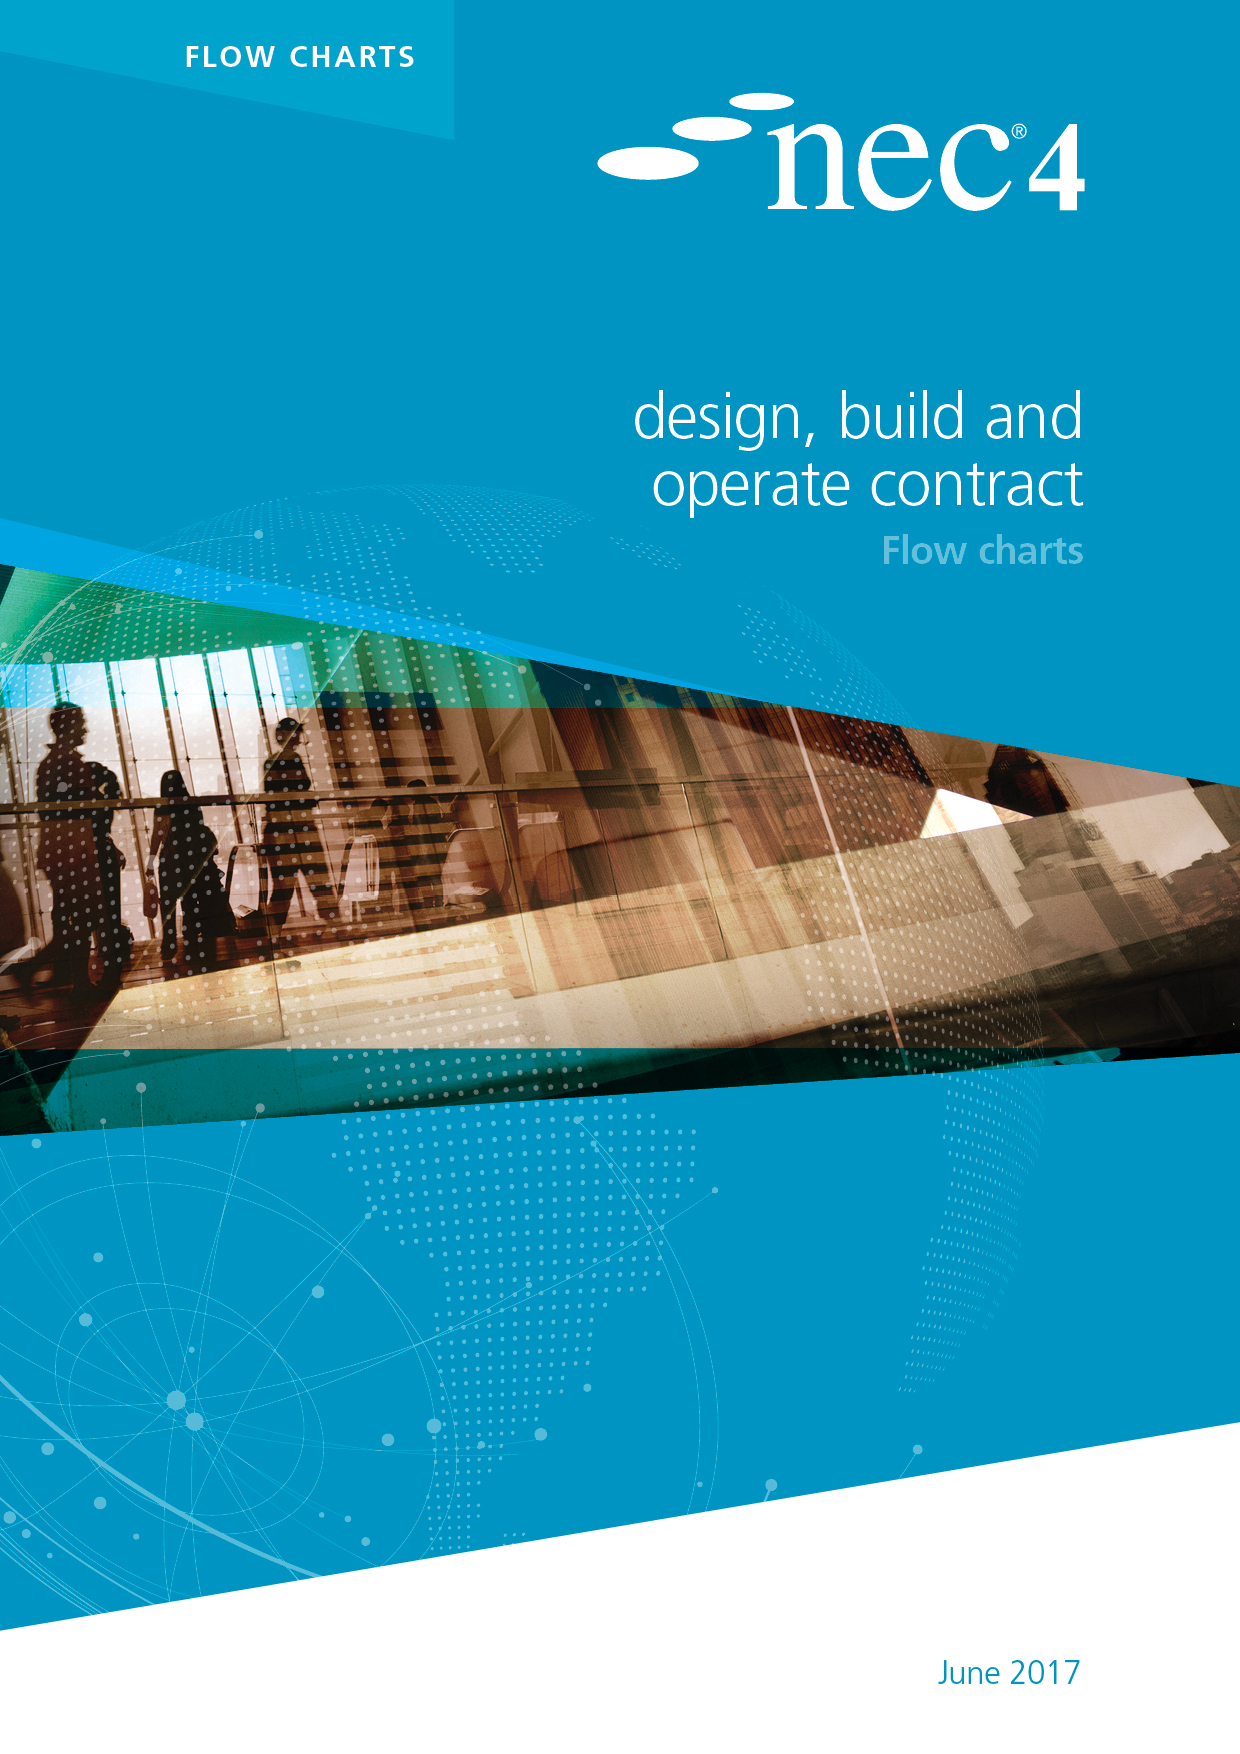 NEC4: Design Build and Operate Contract Flow Charts